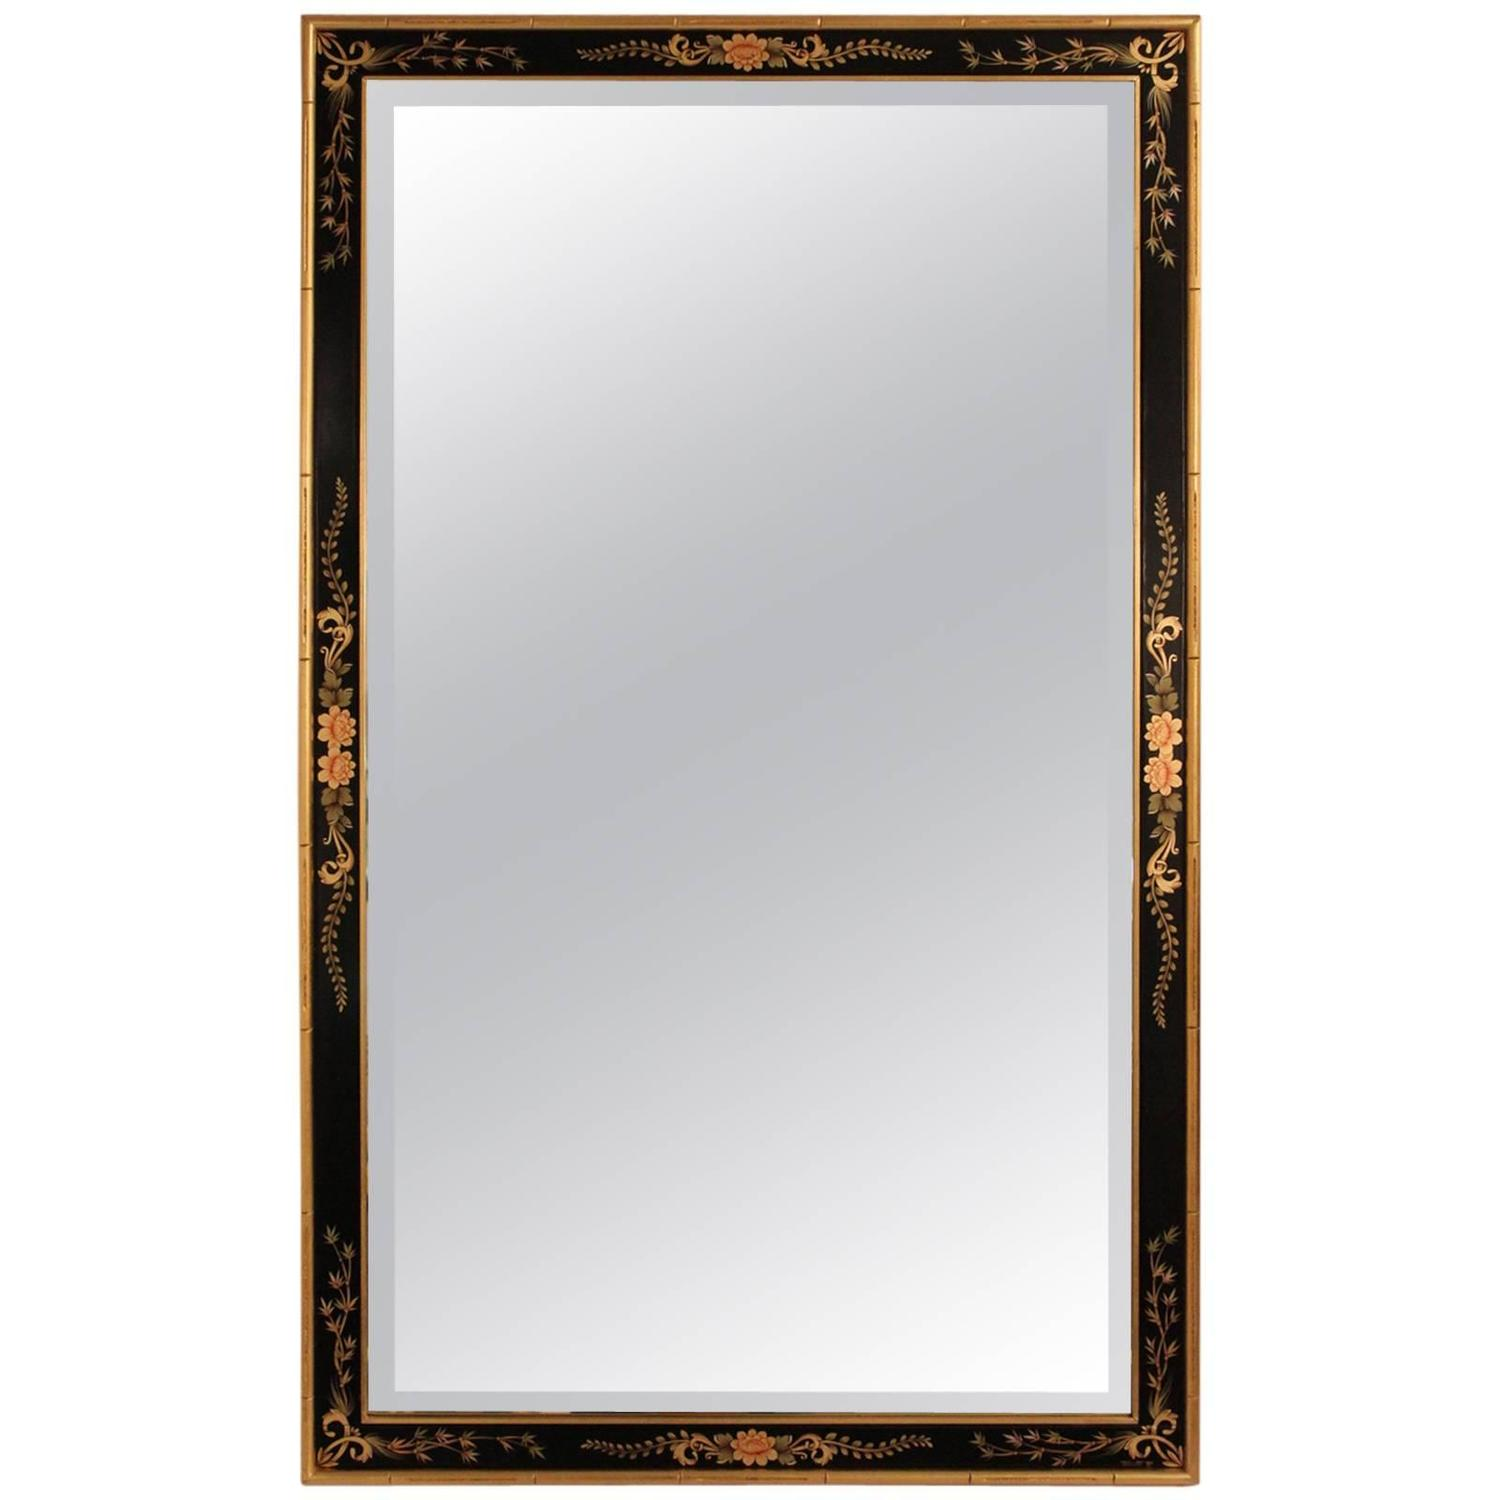 Labarge hand painted beveled wall mirror at 1stdibs for Beveled wall mirror